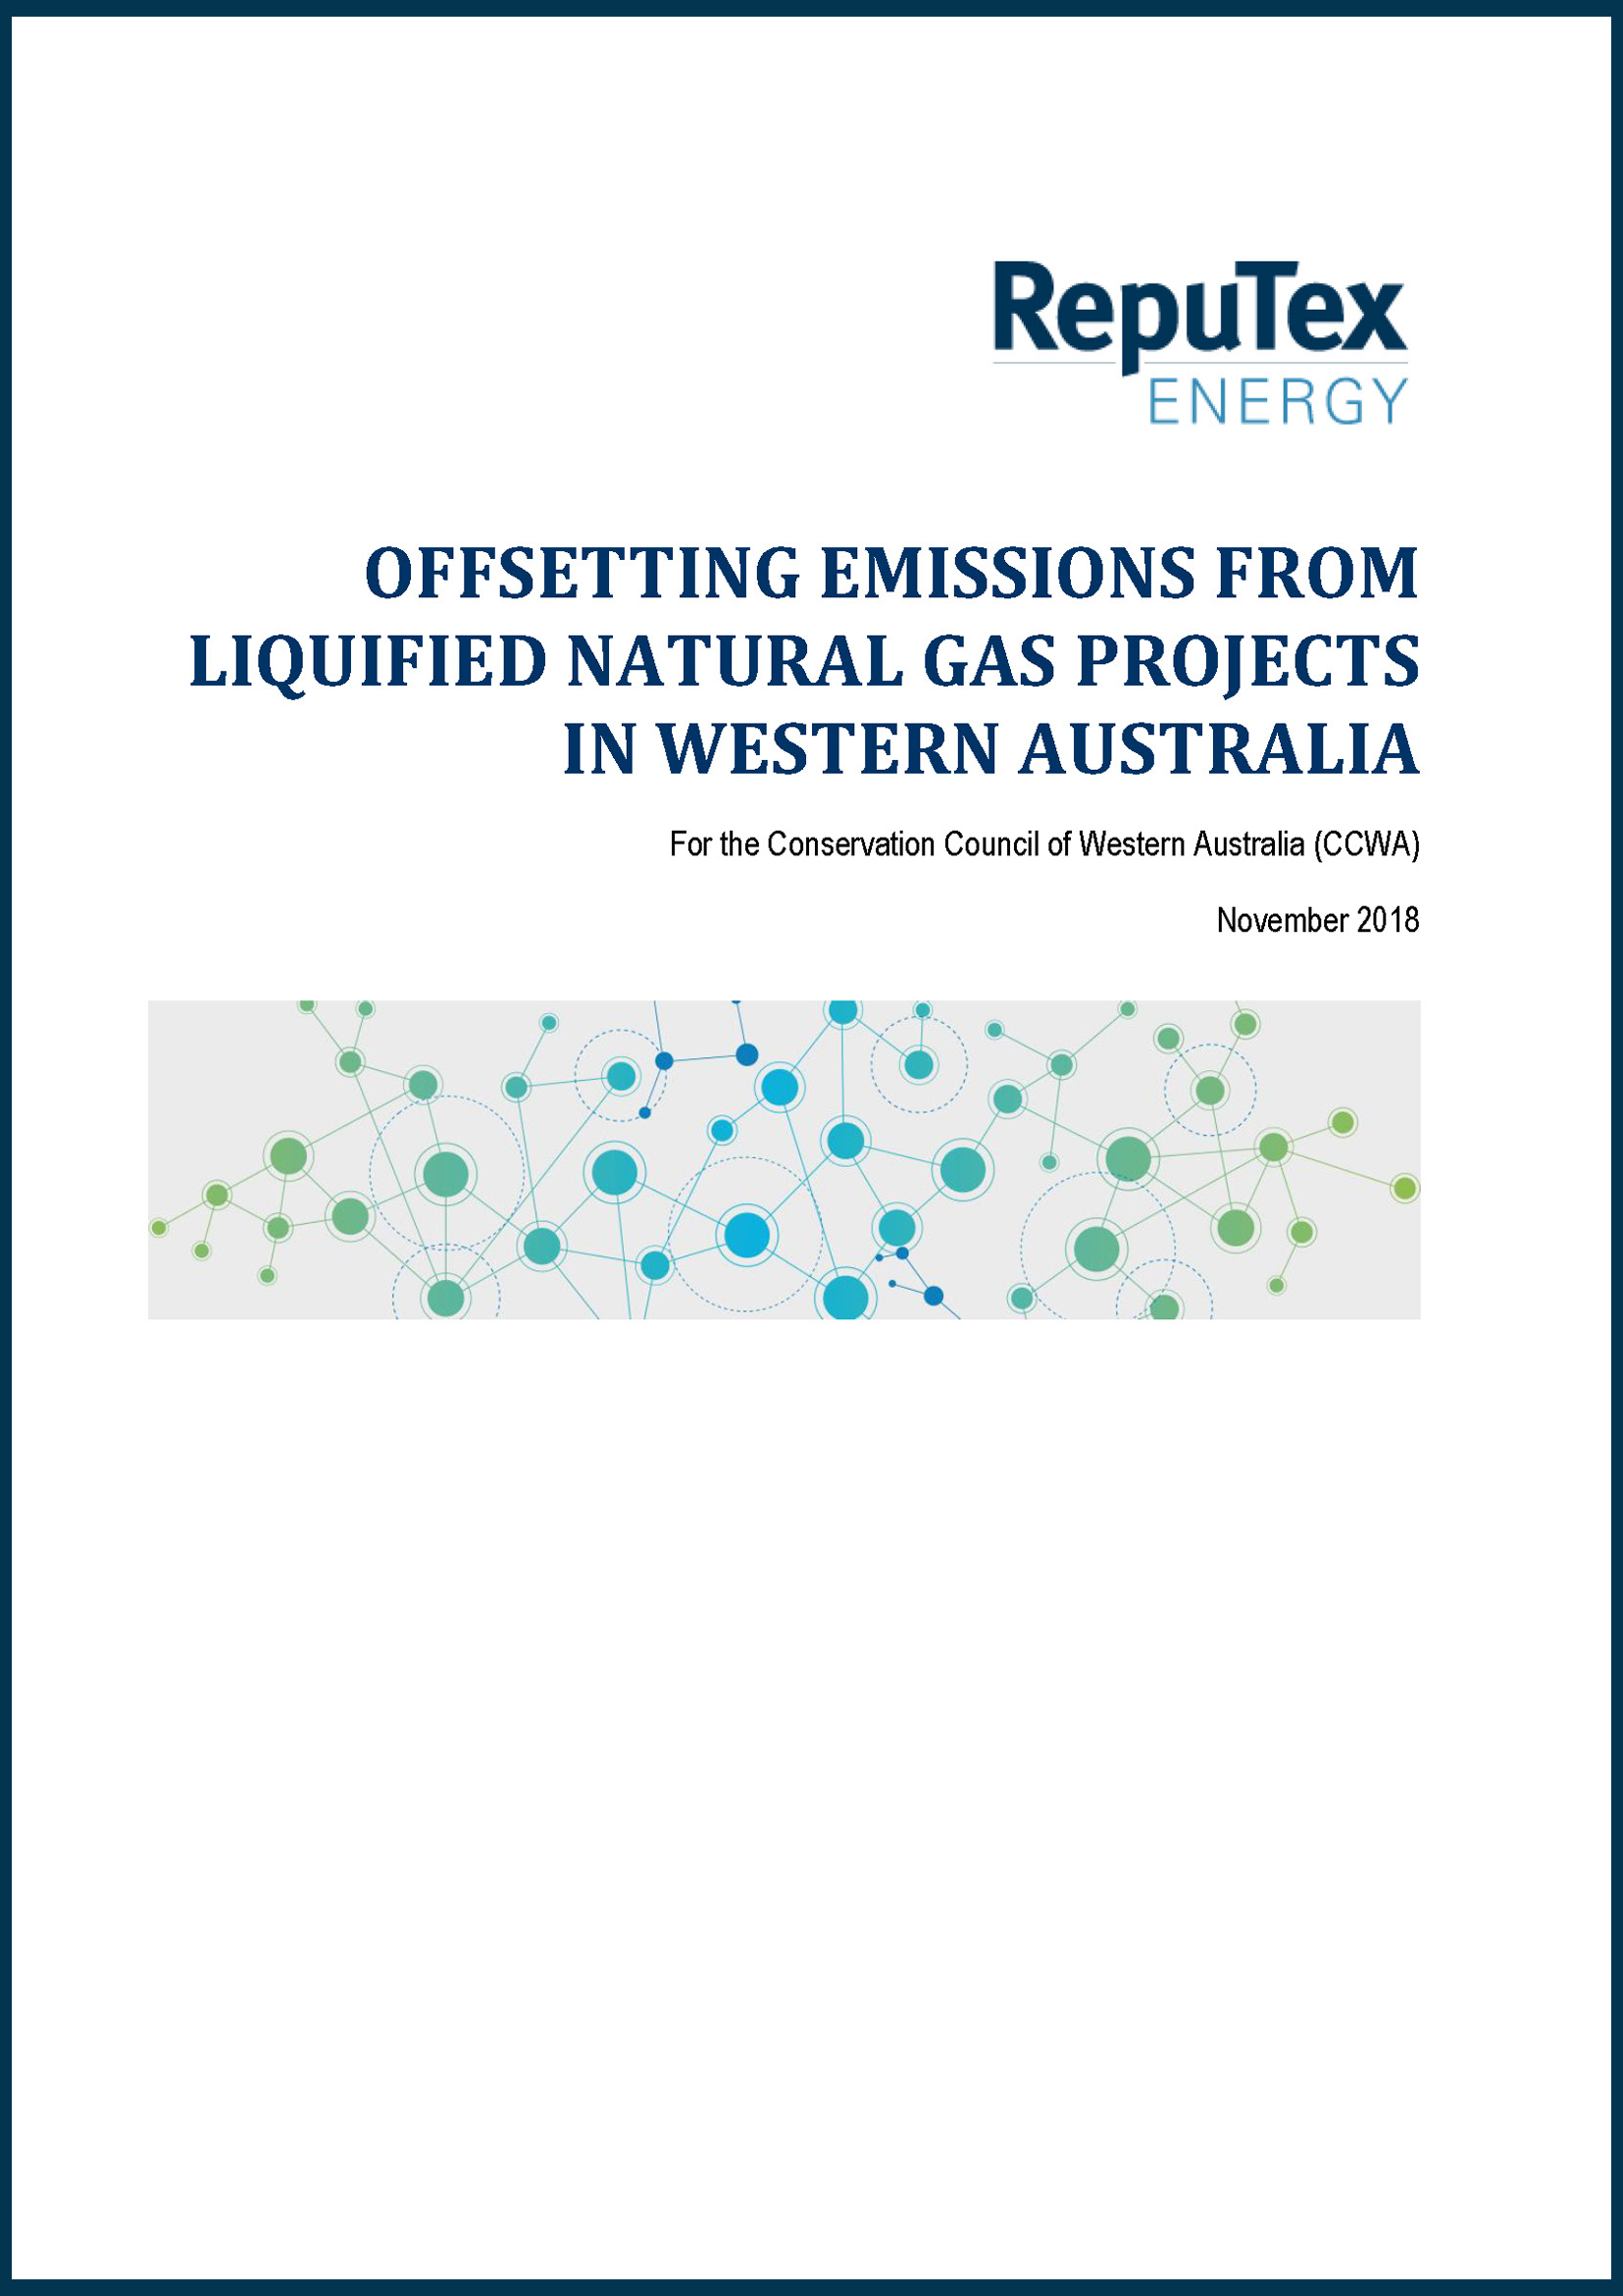 REPUTEX-REPORT_Cost-and-availability-of-offsetting-LNG-emissions-in-Western-Australia_1118.pdf